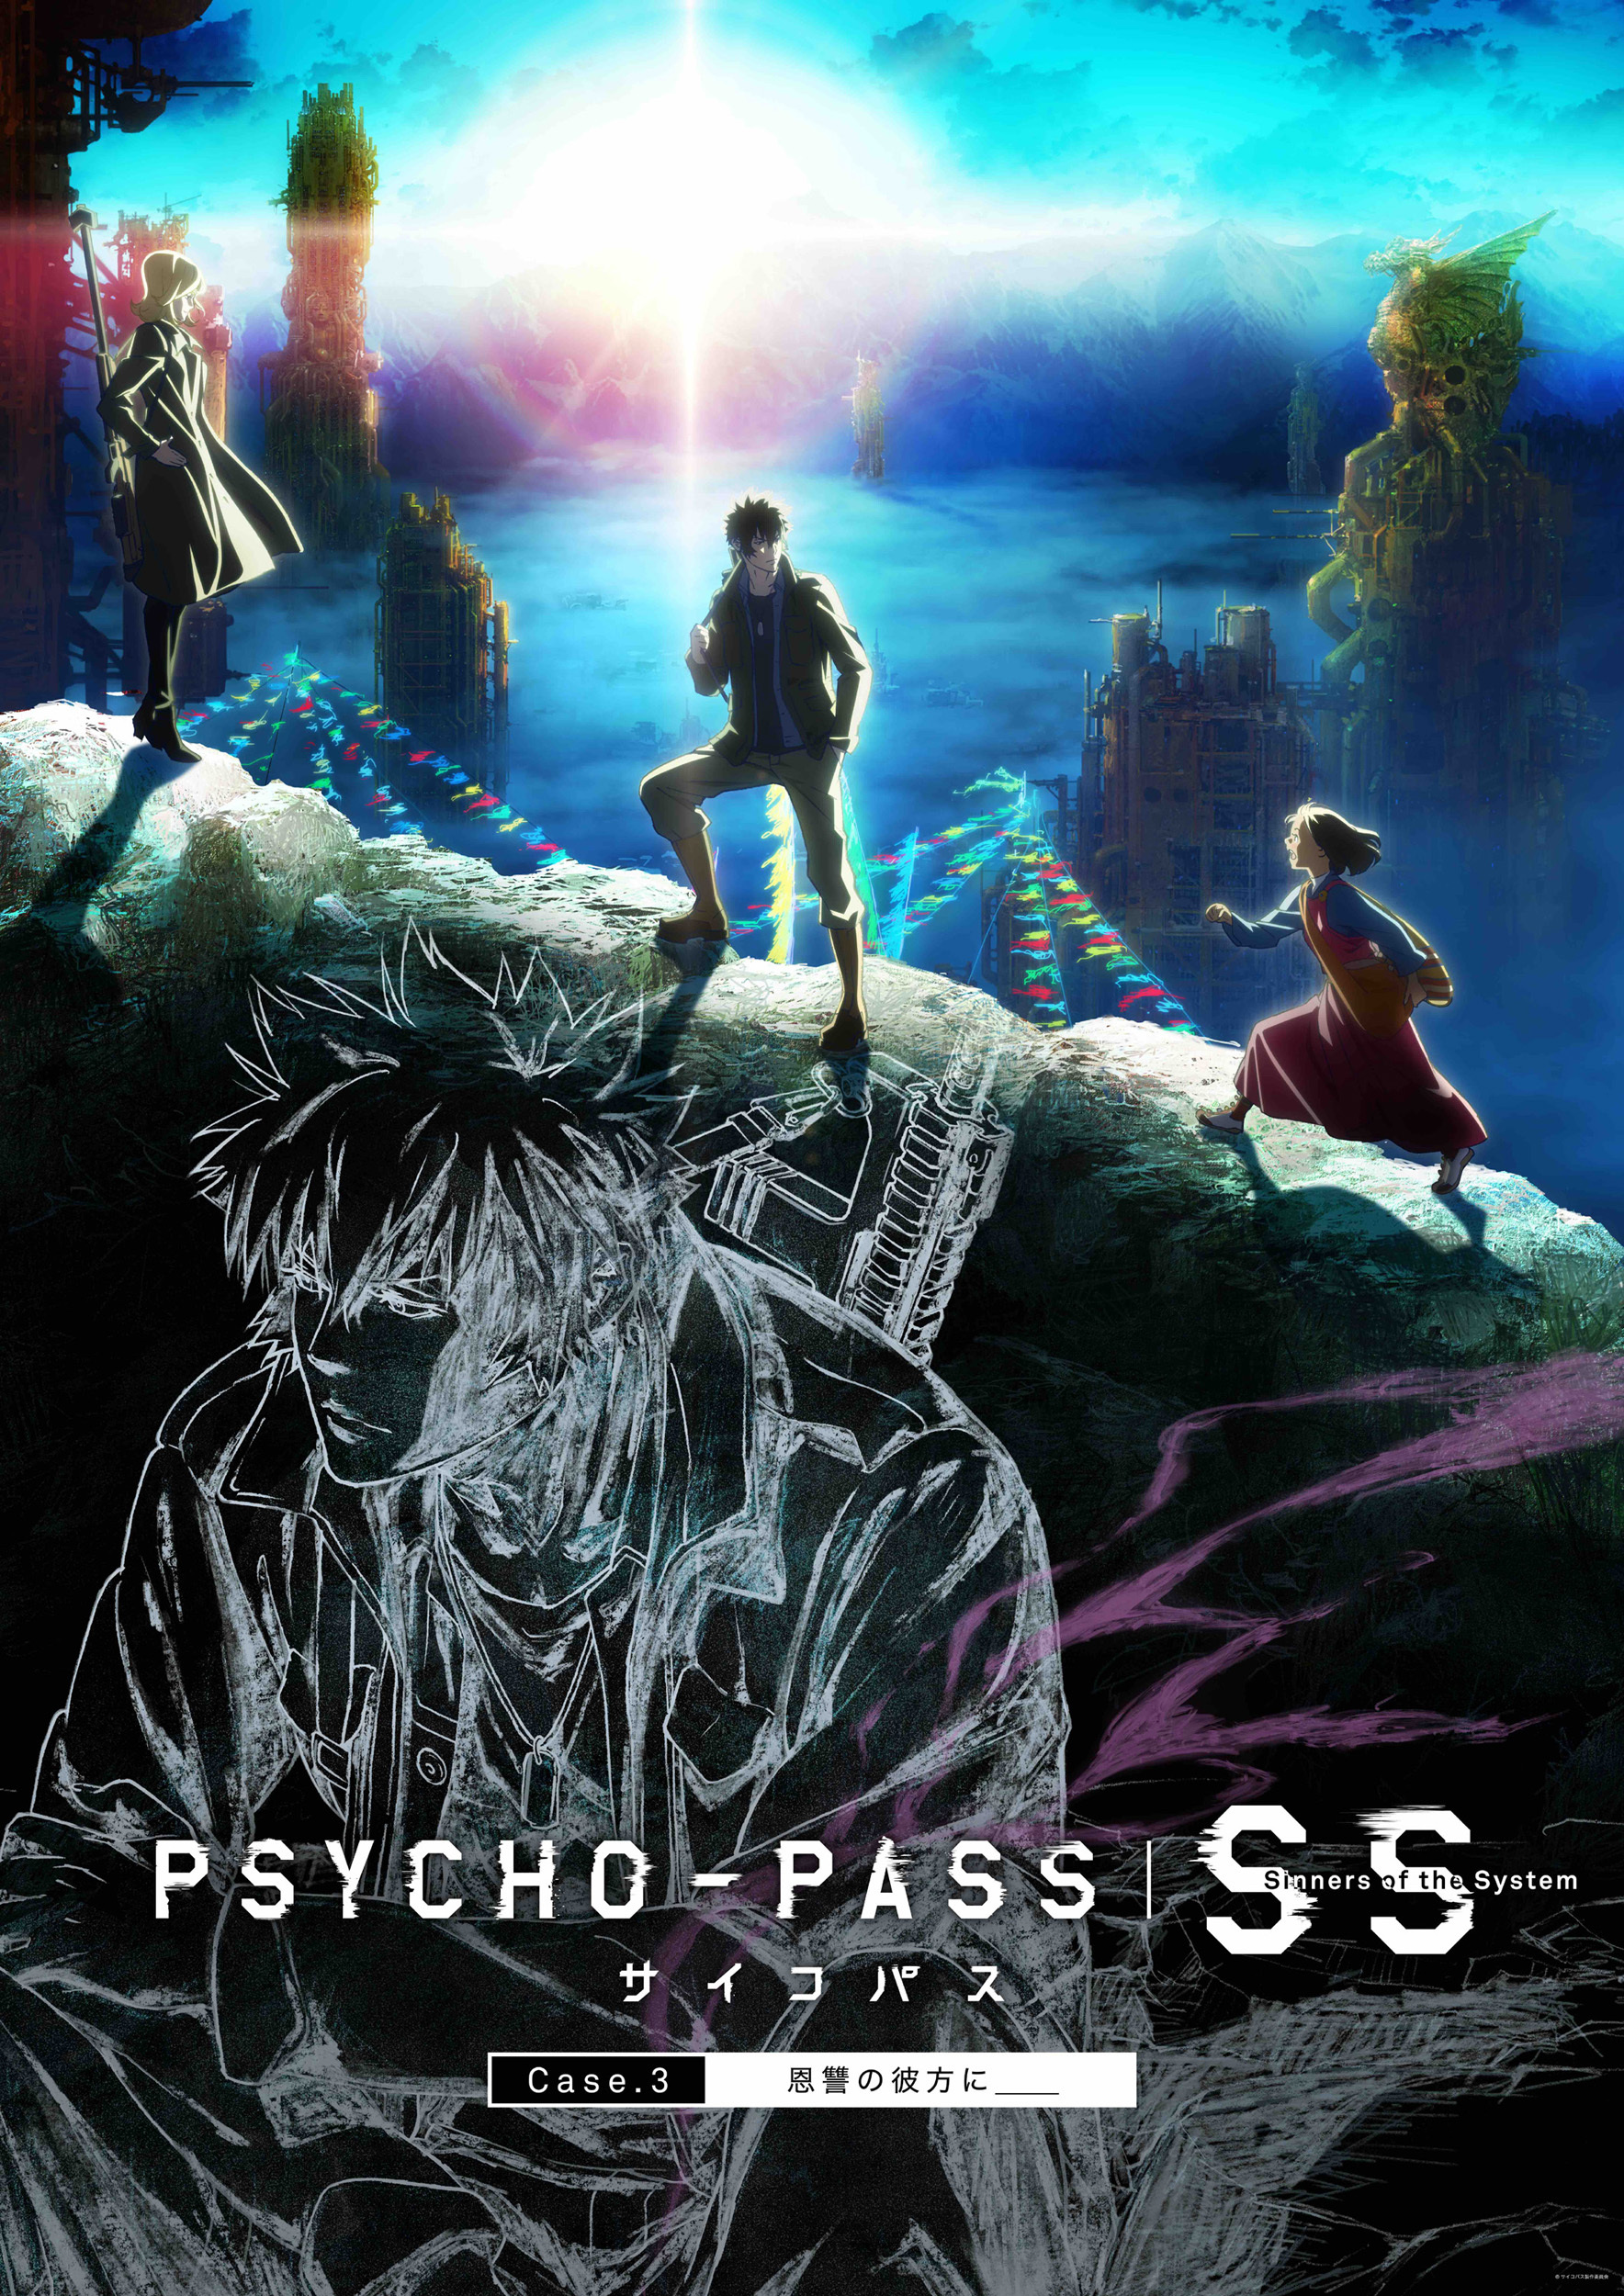 『PSYCHO-PASS サイコパスSinners of the System Case.3恩讐の彼方に__』